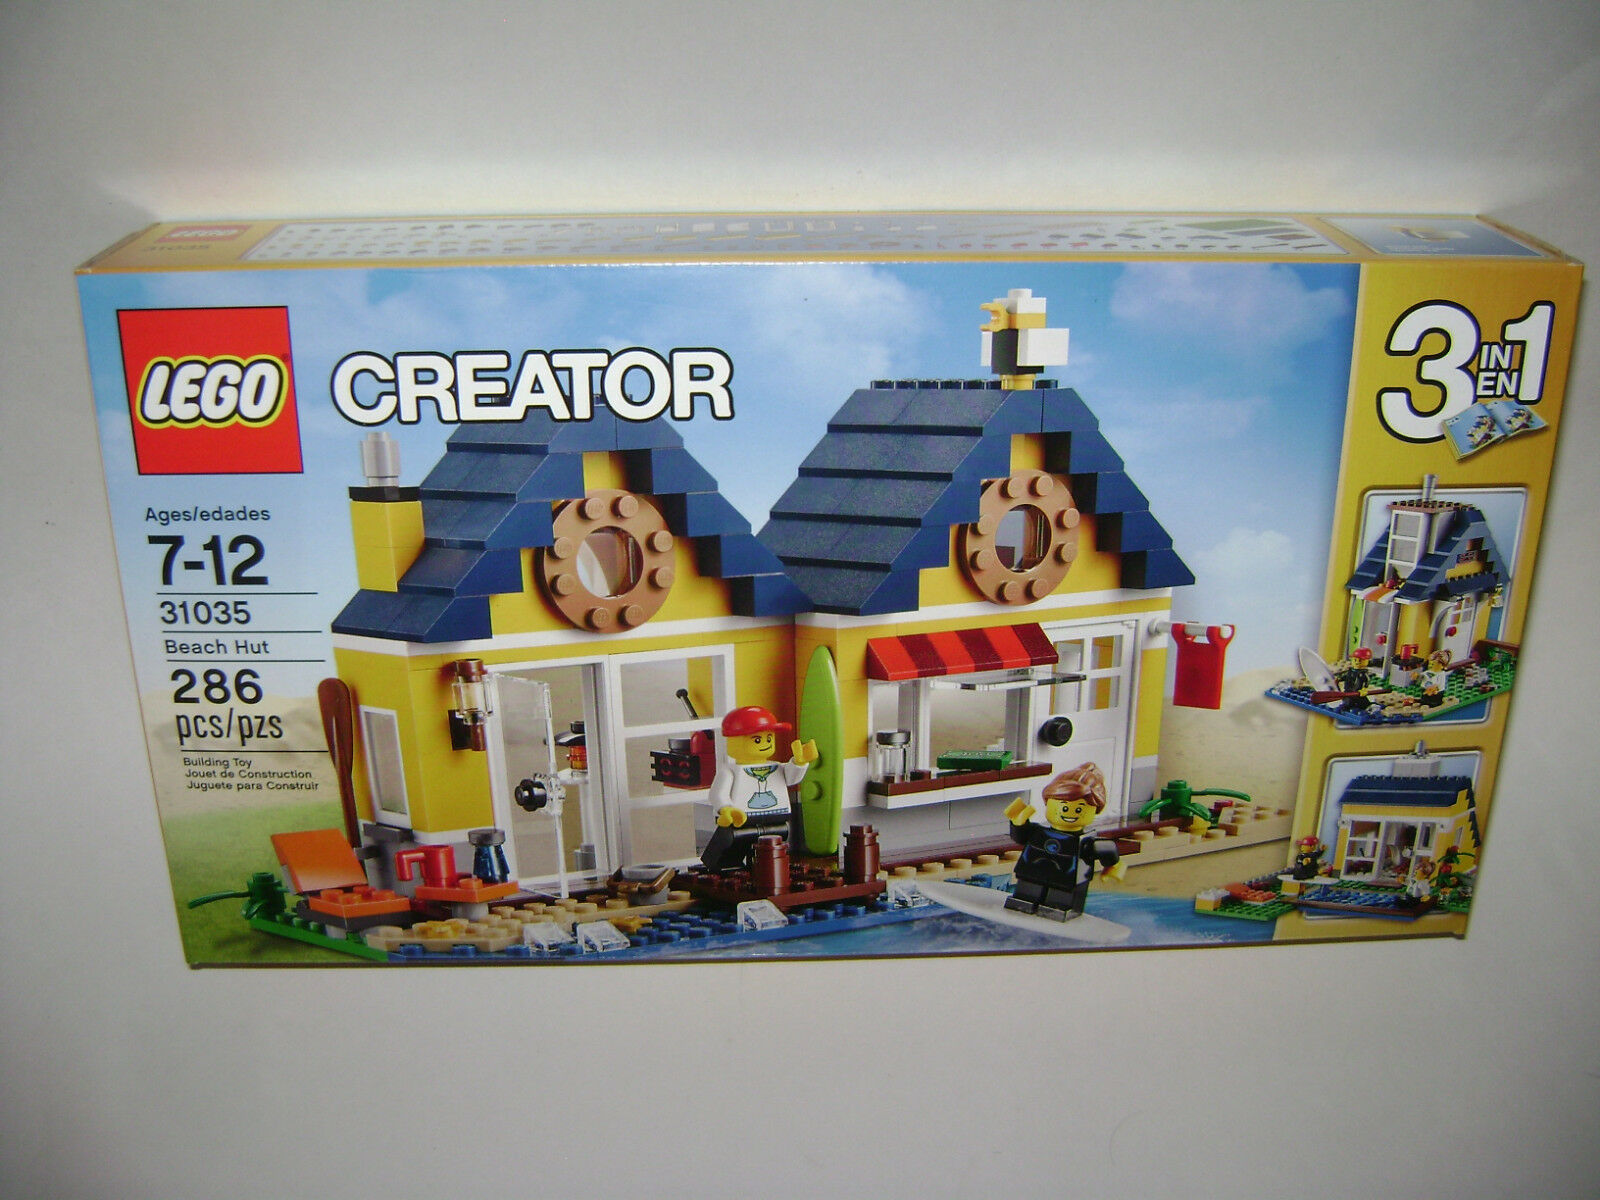 NEW 31035 Lego CREATOR 3 in 1 Beach Hut Building Toy SEALED BOX RETIrosso A